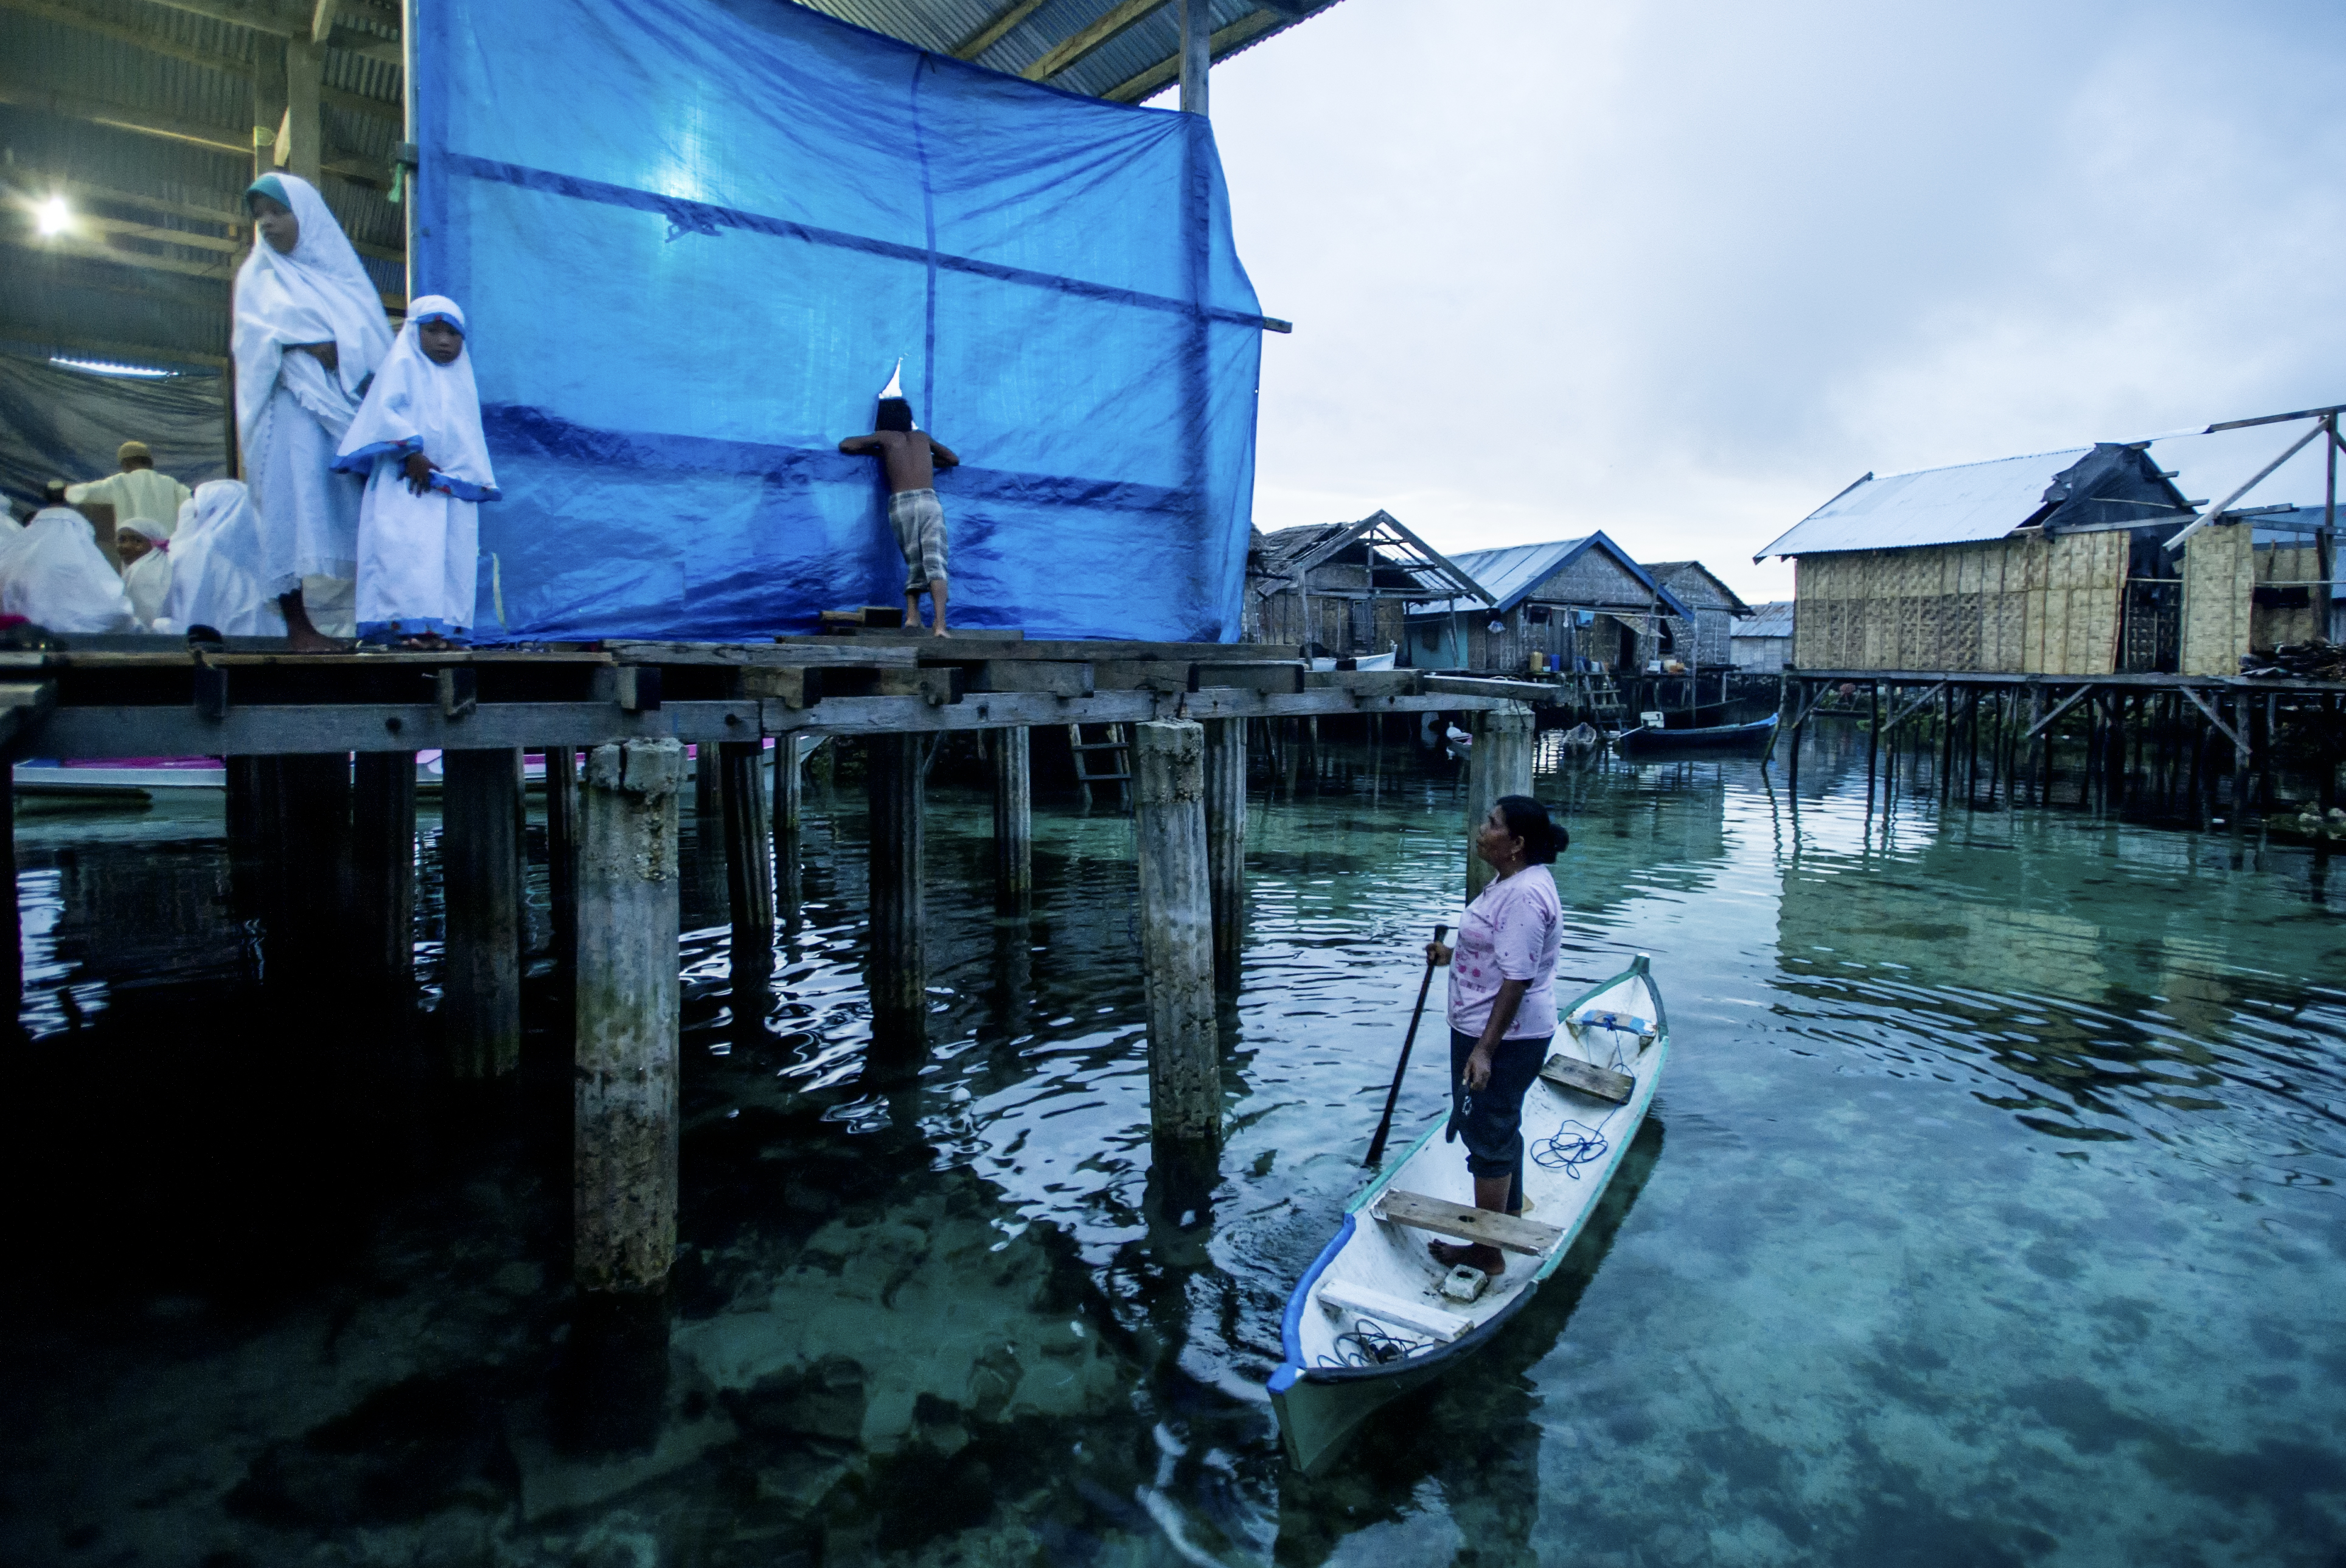 1. Though a majority of Bajau now live in stilt communities, they still build their mosques over the ocean. They practice a syncretic belief system that allows for a deep reverence for the ocean and the spirits that are said to inhabit it. 2. Night time prayers at a mosque on stilts over the ocean.